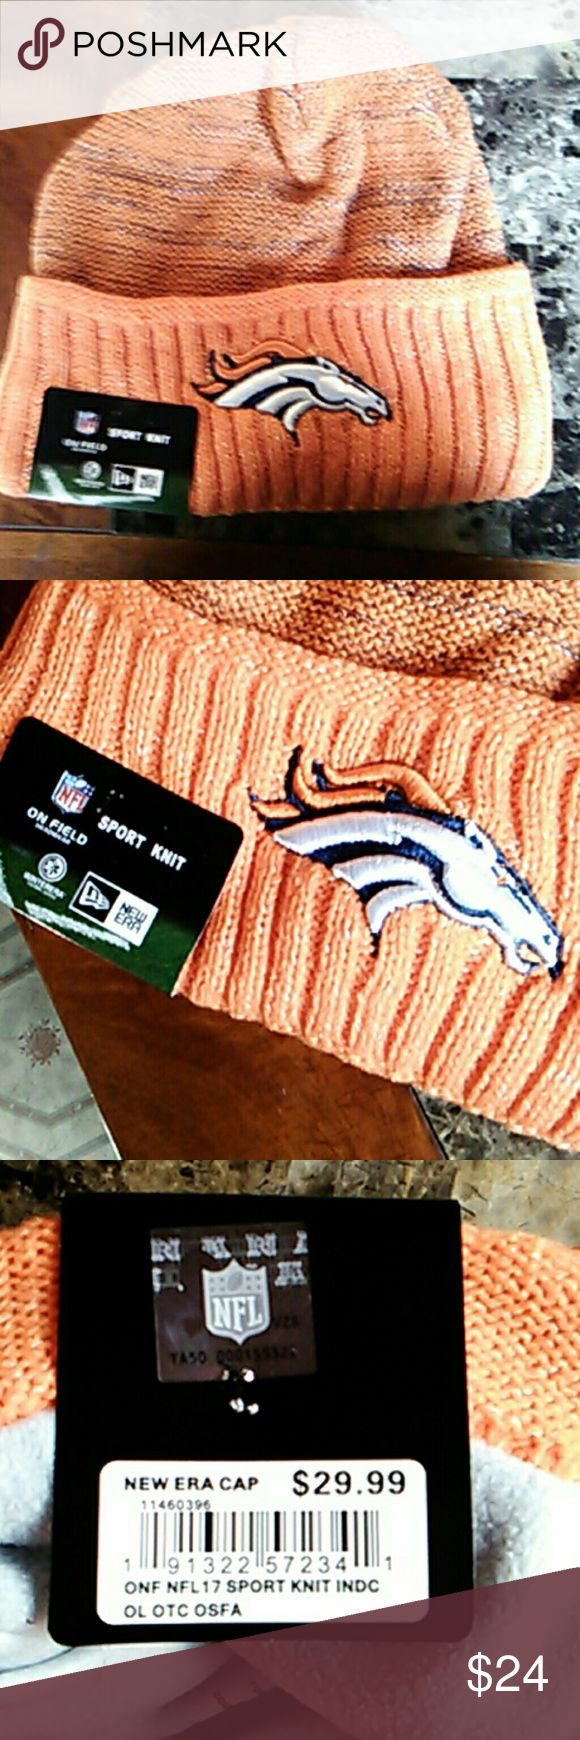 New Era NFL Broncos Beanie New. Never Used. Great for Gift or Personal.  Ships ASAP. New Era Accessories Hats